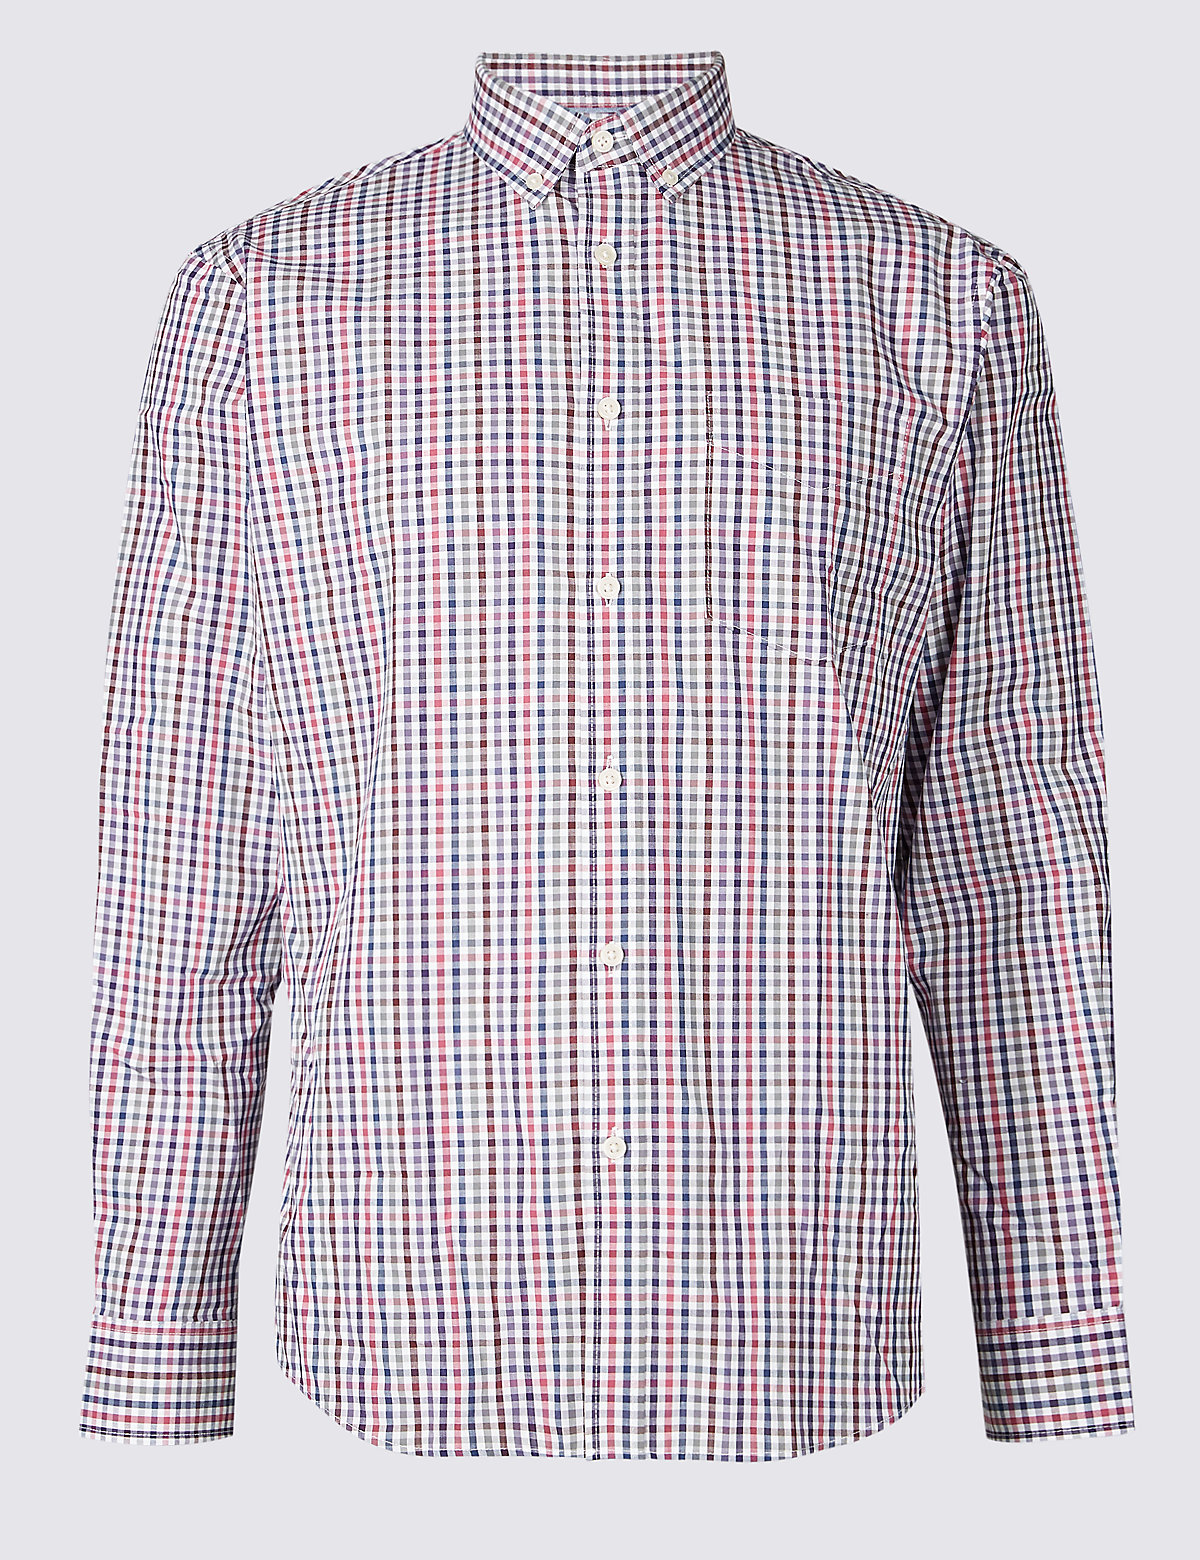 Marks & Spencer Wine Pure Cotton Checked Shirt with Pocket